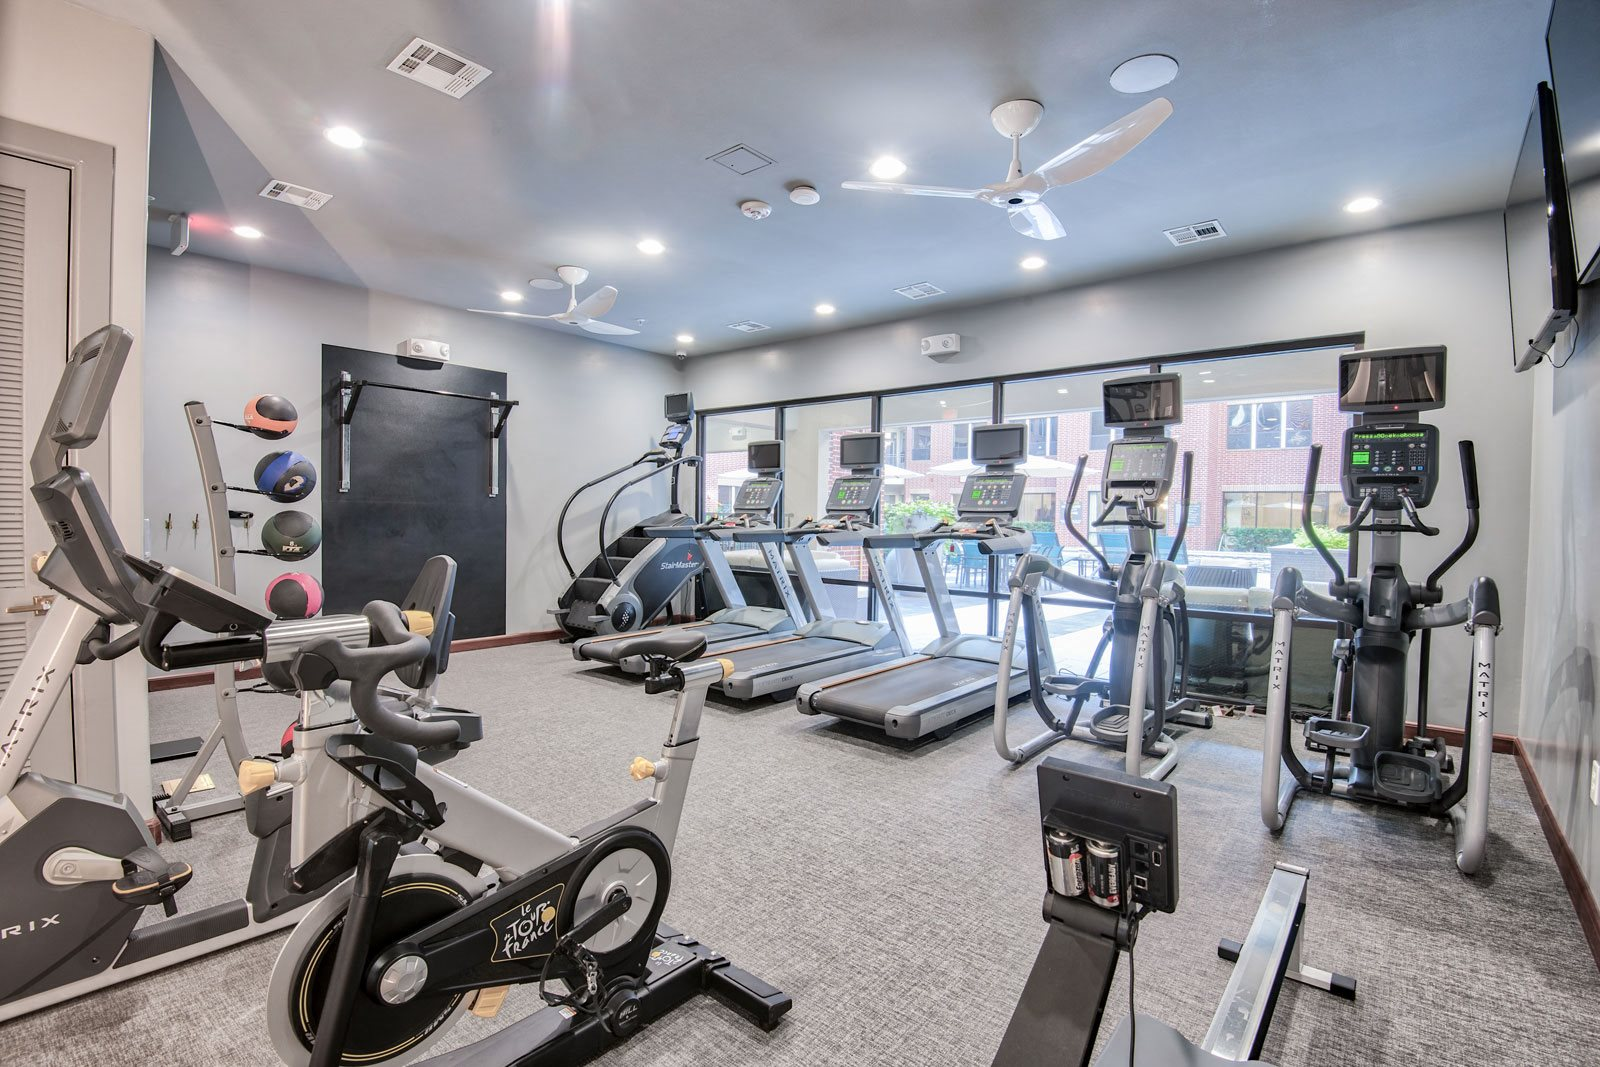 Cardio Equipment at Midtown Houston by Windsor, 77002, Houston